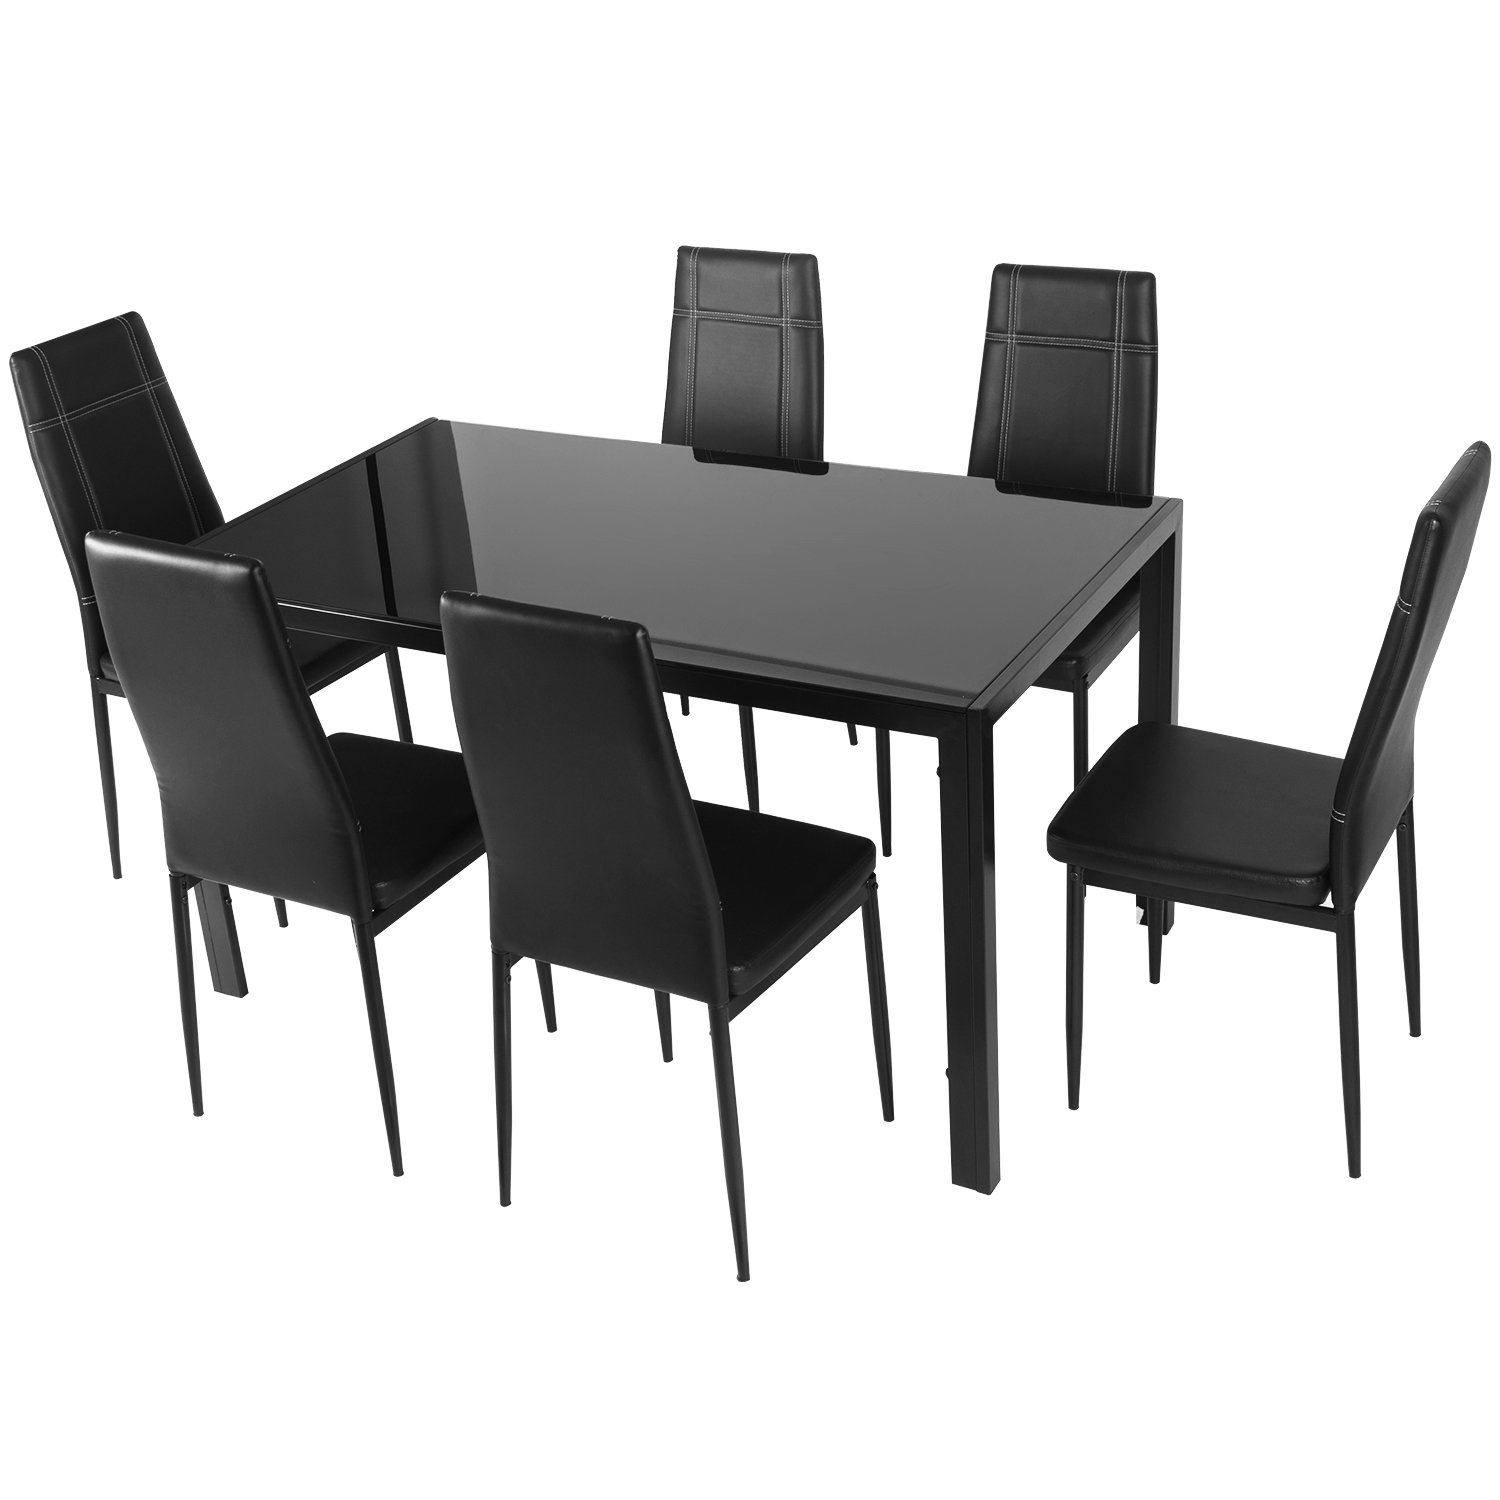 Merax Maynard 7 Piece Dining Set & Reviews | Wayfair.ca With Most Popular Linette 5 Piece Dining Table Sets (Photo 14 of 20)